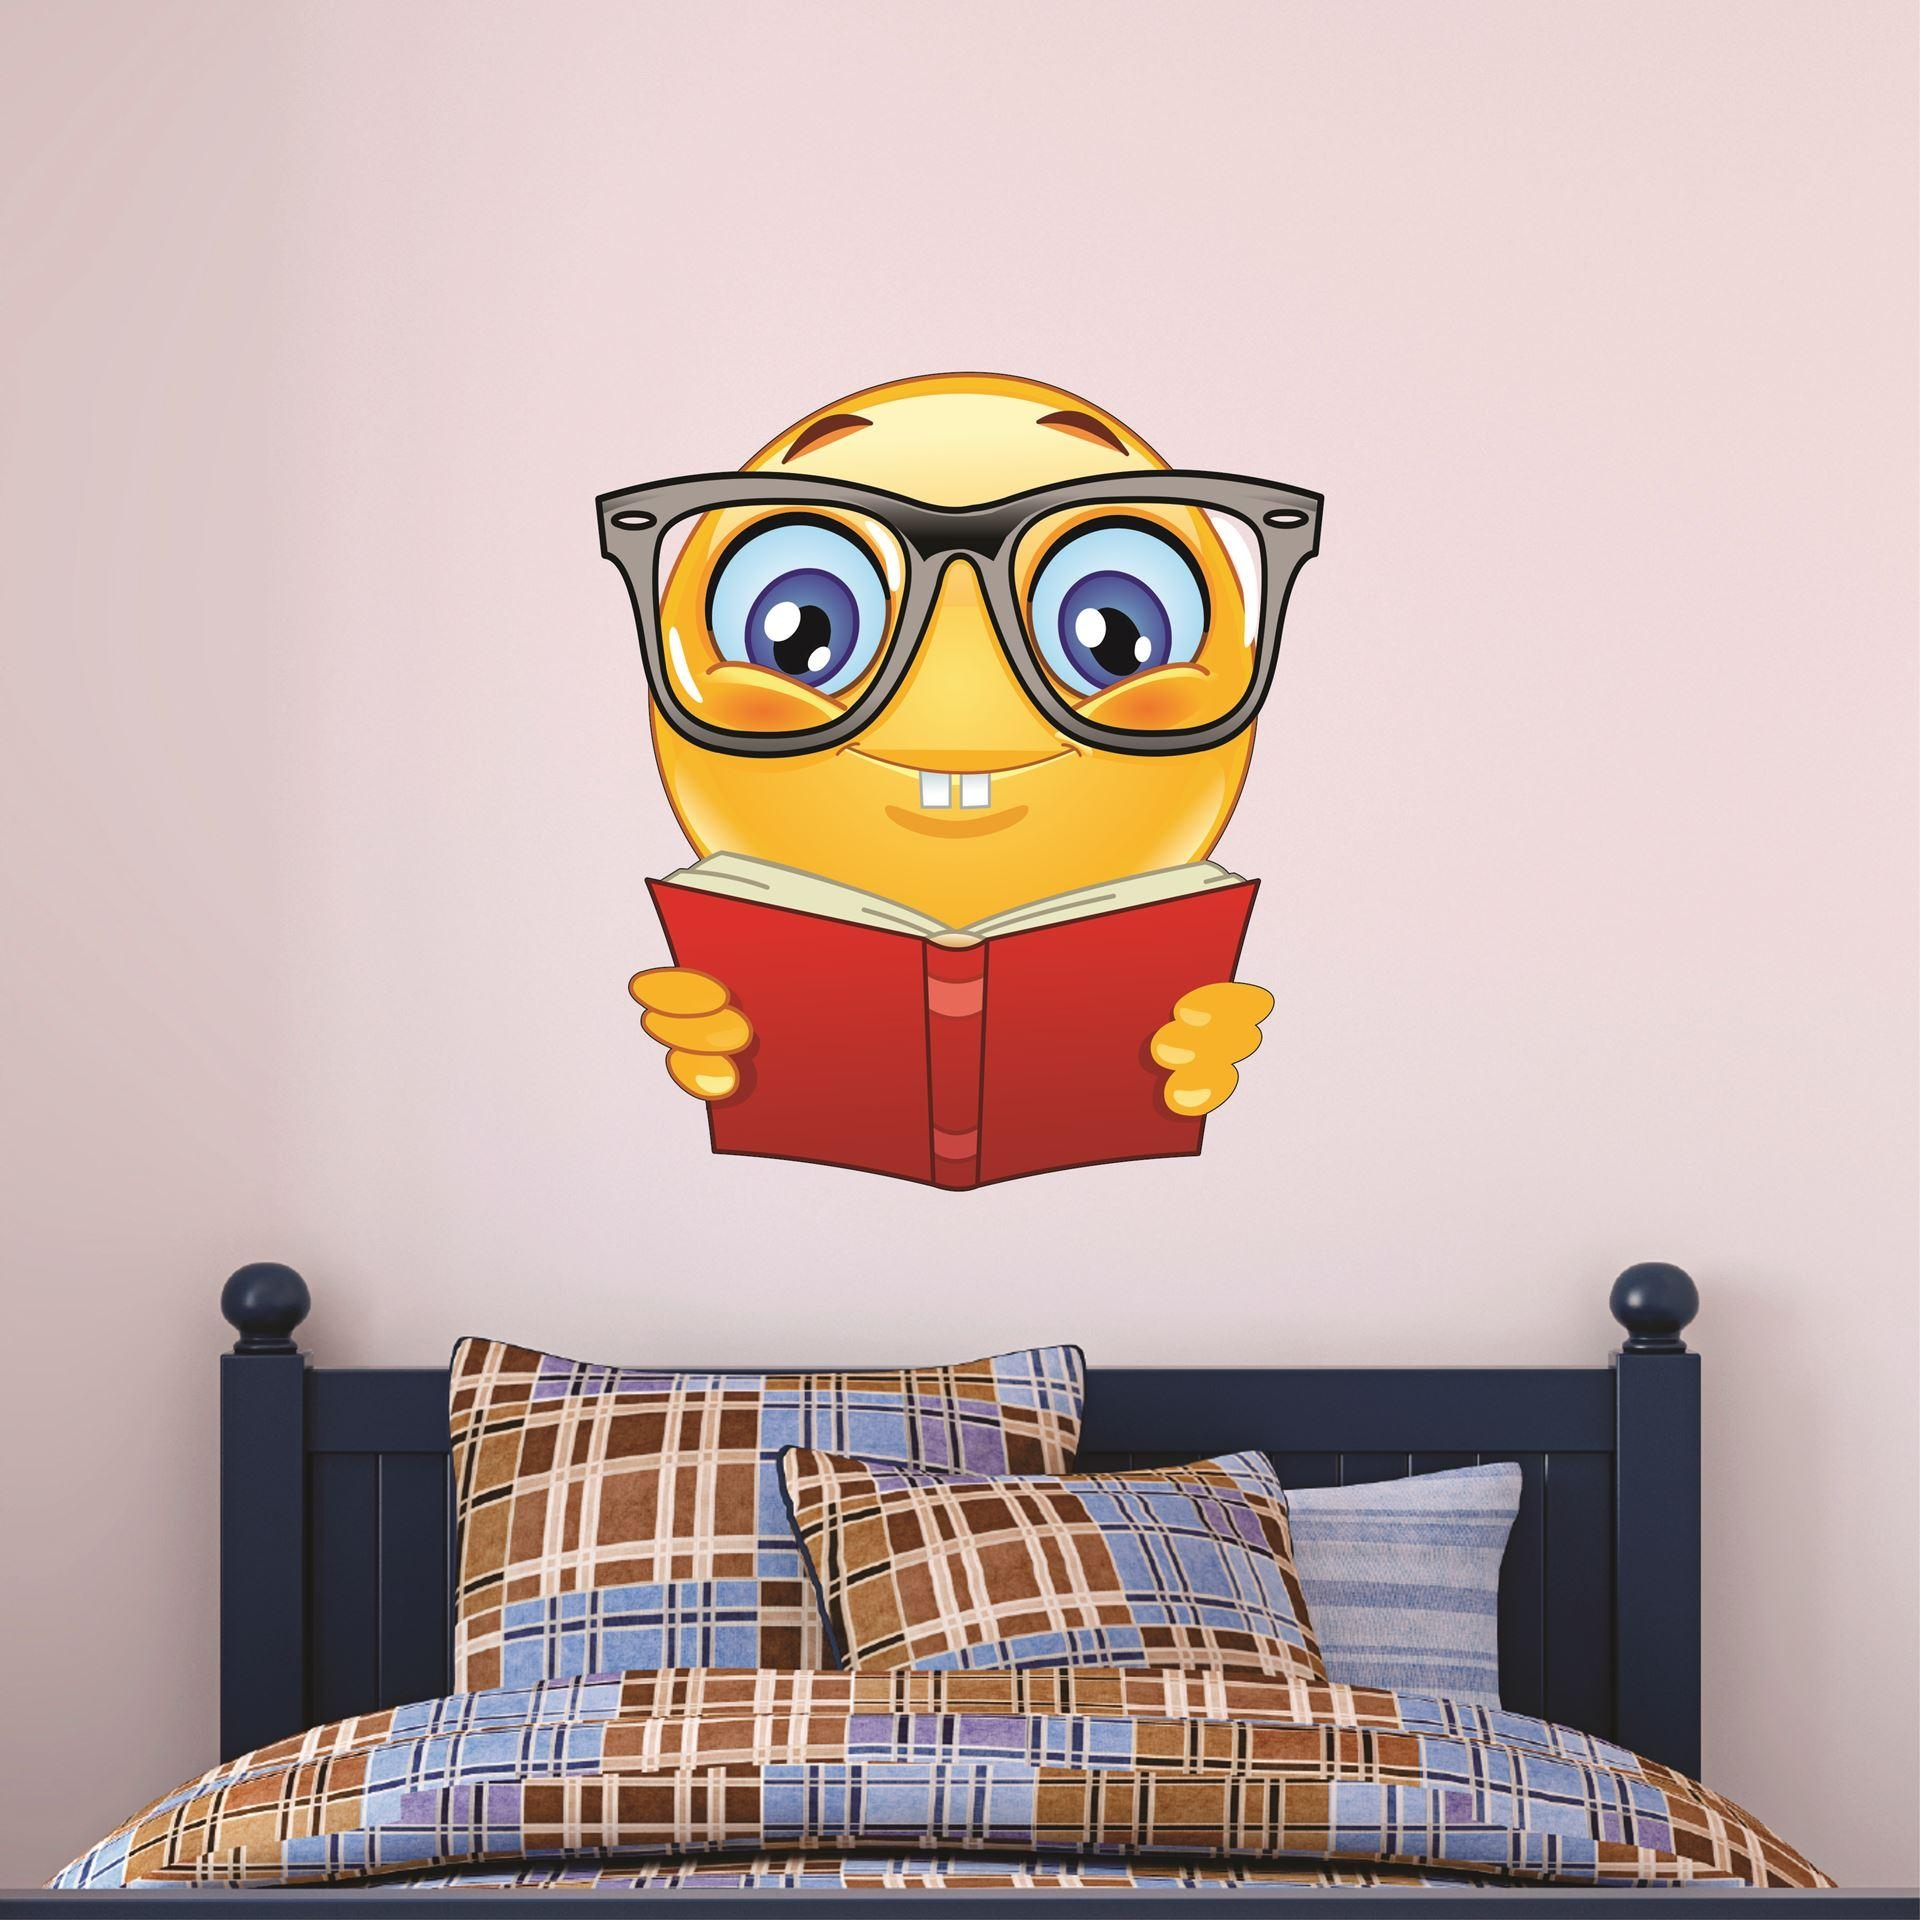 Custom 10+ Emoji Wall Art Inspiration Of Emoji Wall Art | Online With Regard To Emoji Wall Art (Image 9 of 20)